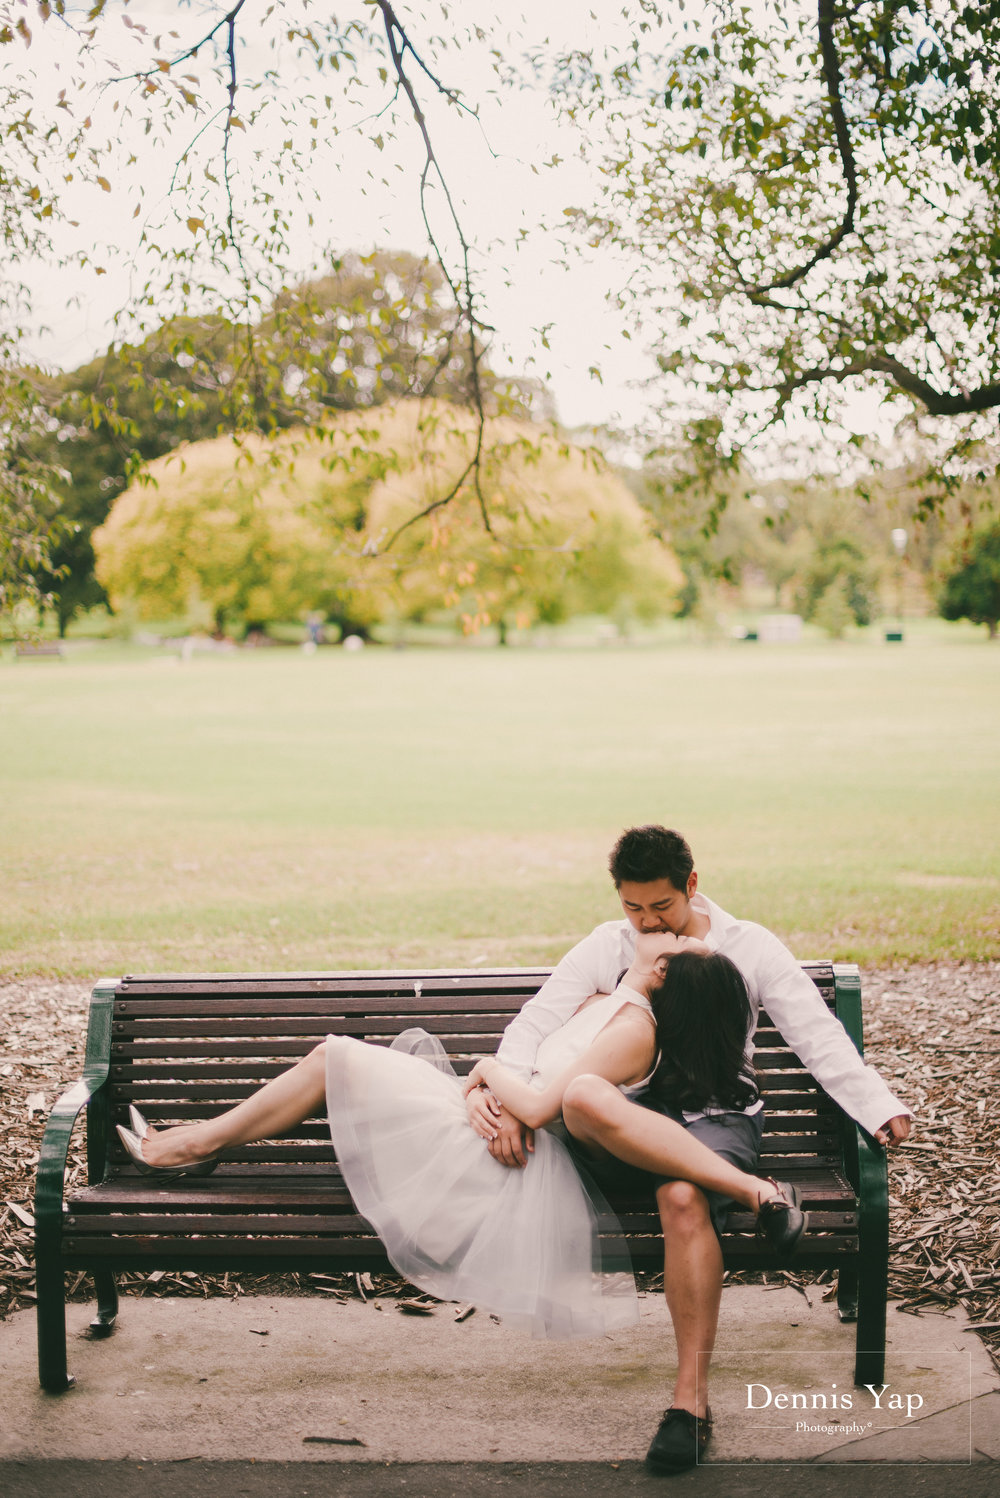 vincent sarah pre wedding dangdenong forest melbourne beloved dennis yap photography malaysia top photographer0080Vincent & Sarah-35.jpg